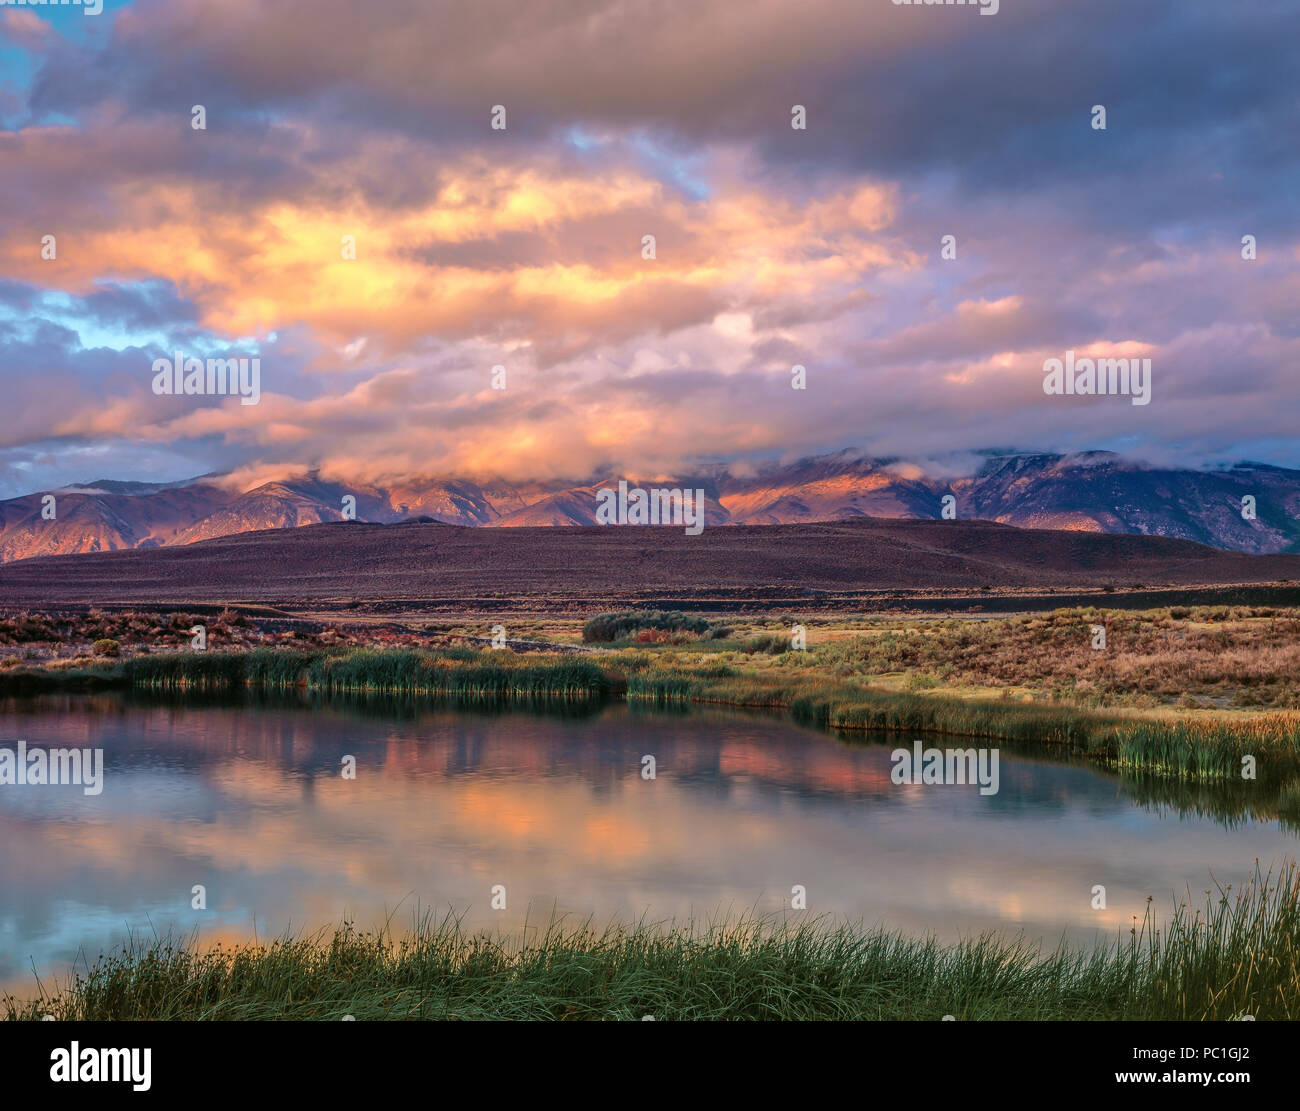 Sunrise, Wetlands, Mono Basin National Forest Scenic Area, Inyo National Forest, Eastern Sierra, California - Stock Image